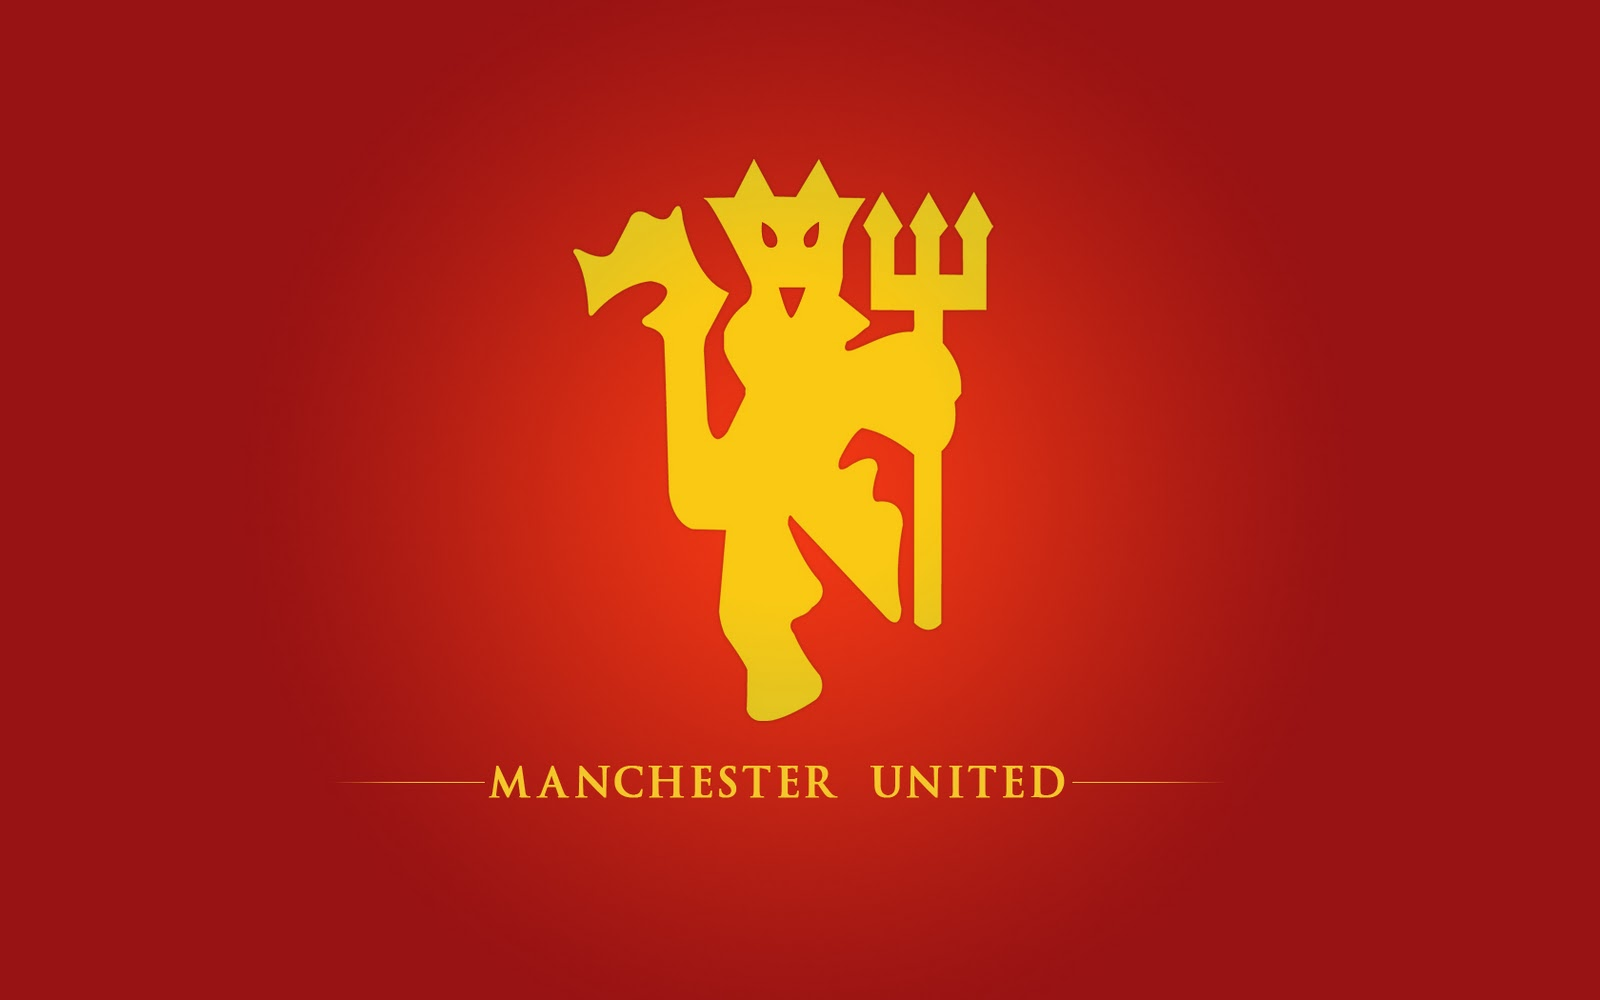 Manchester United Red Devil Logo Wallpaper Man United | Malaysia No. 1 ...